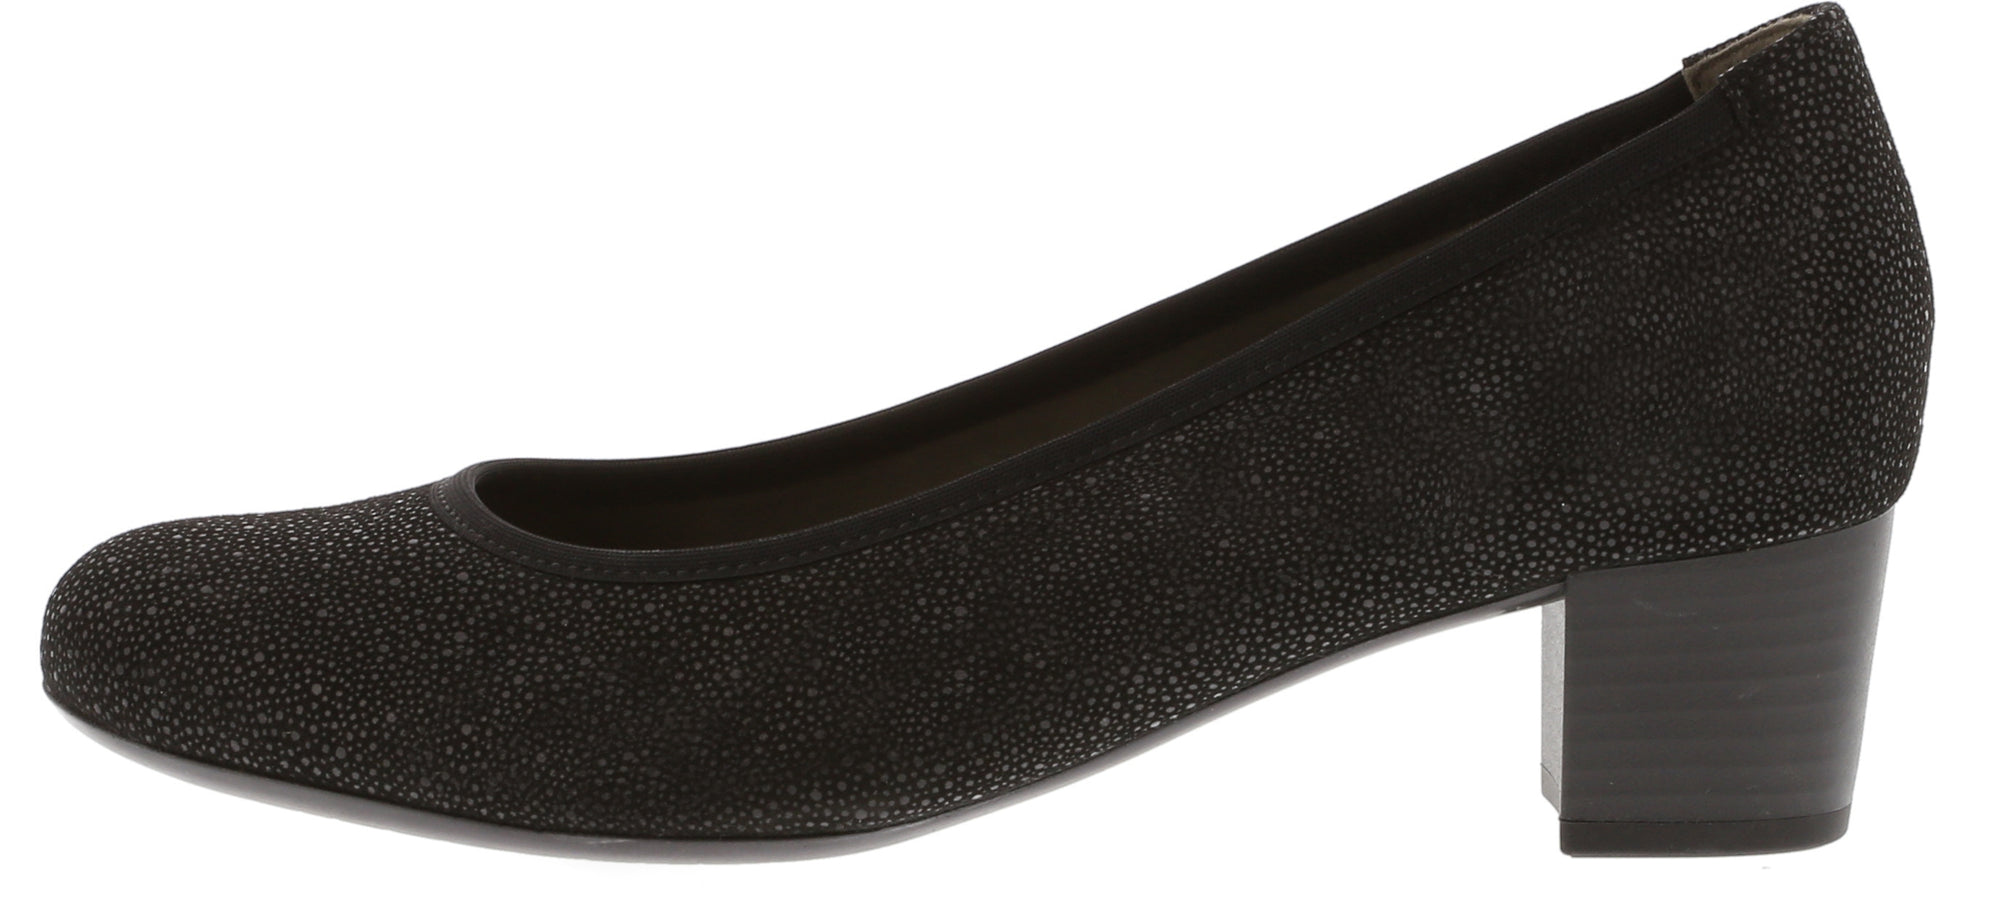 Gabor - 75.380 - Black - Print  - Block Heel  Court Shoe